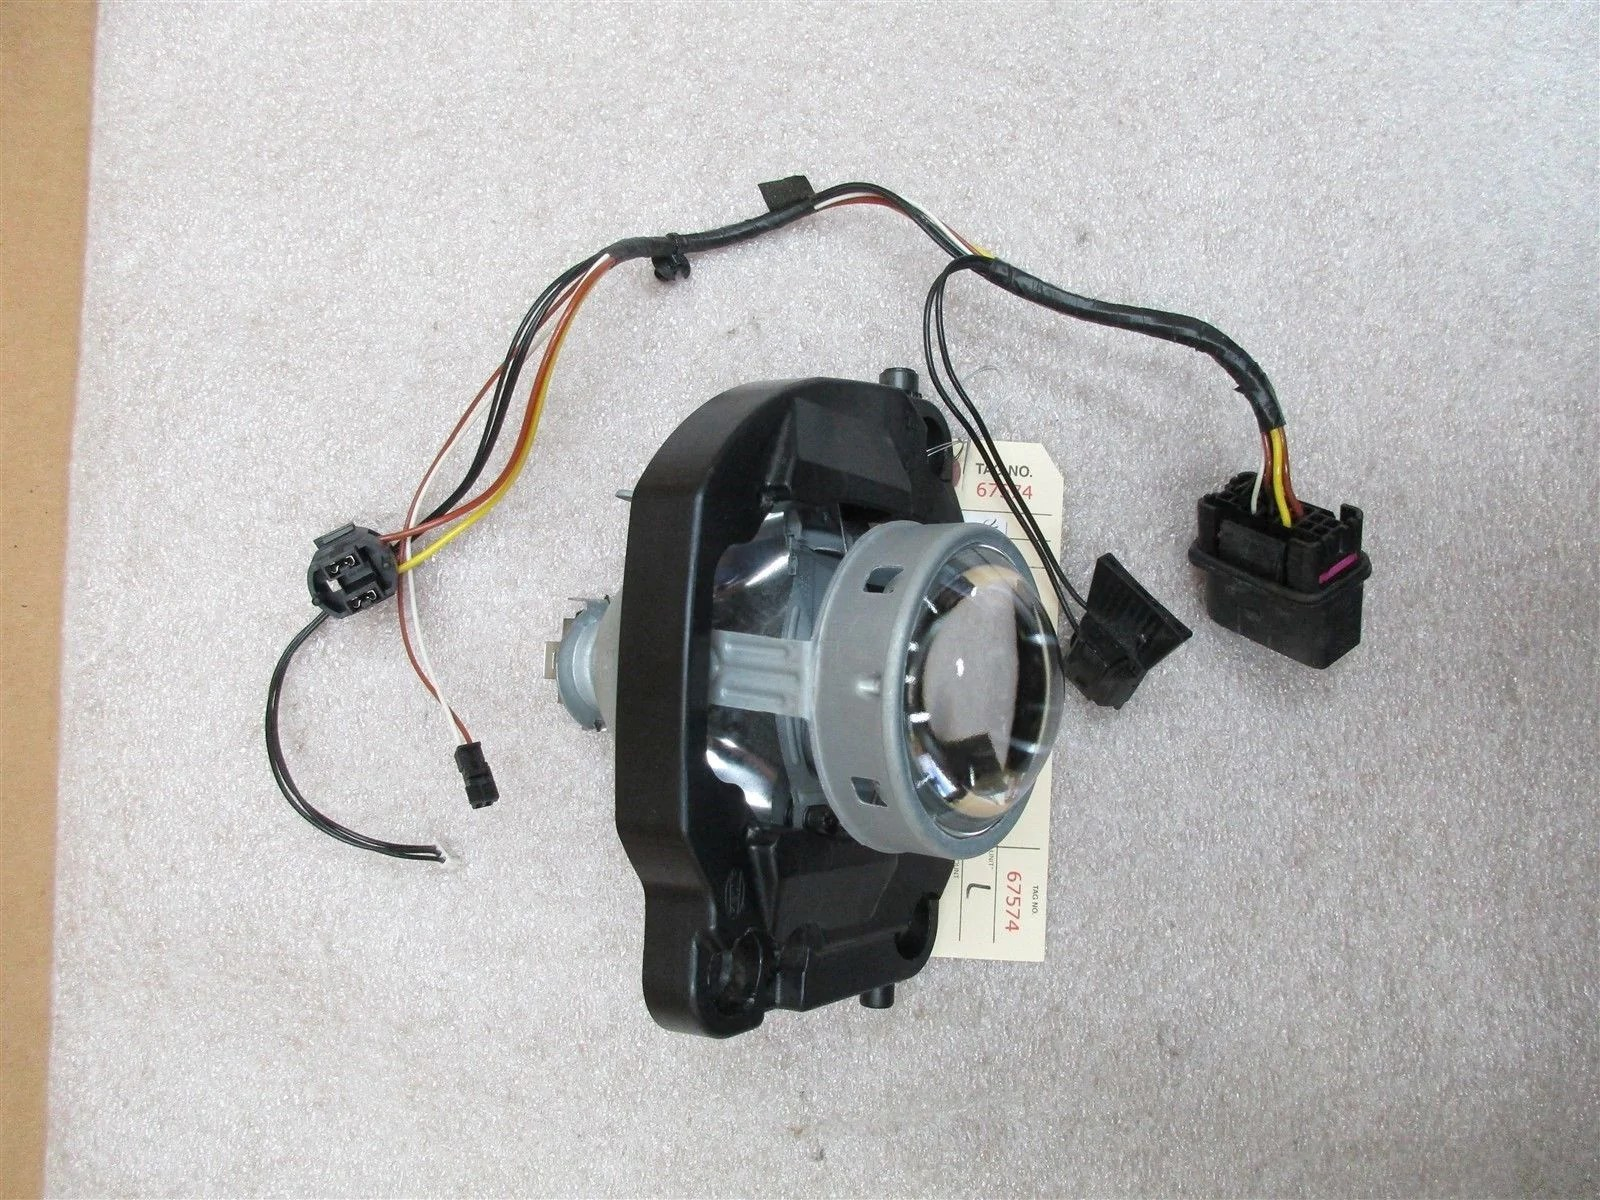 medium resolution of 08 cayenne s awd porsche 957 l headlight hardware wiring harness 122 873